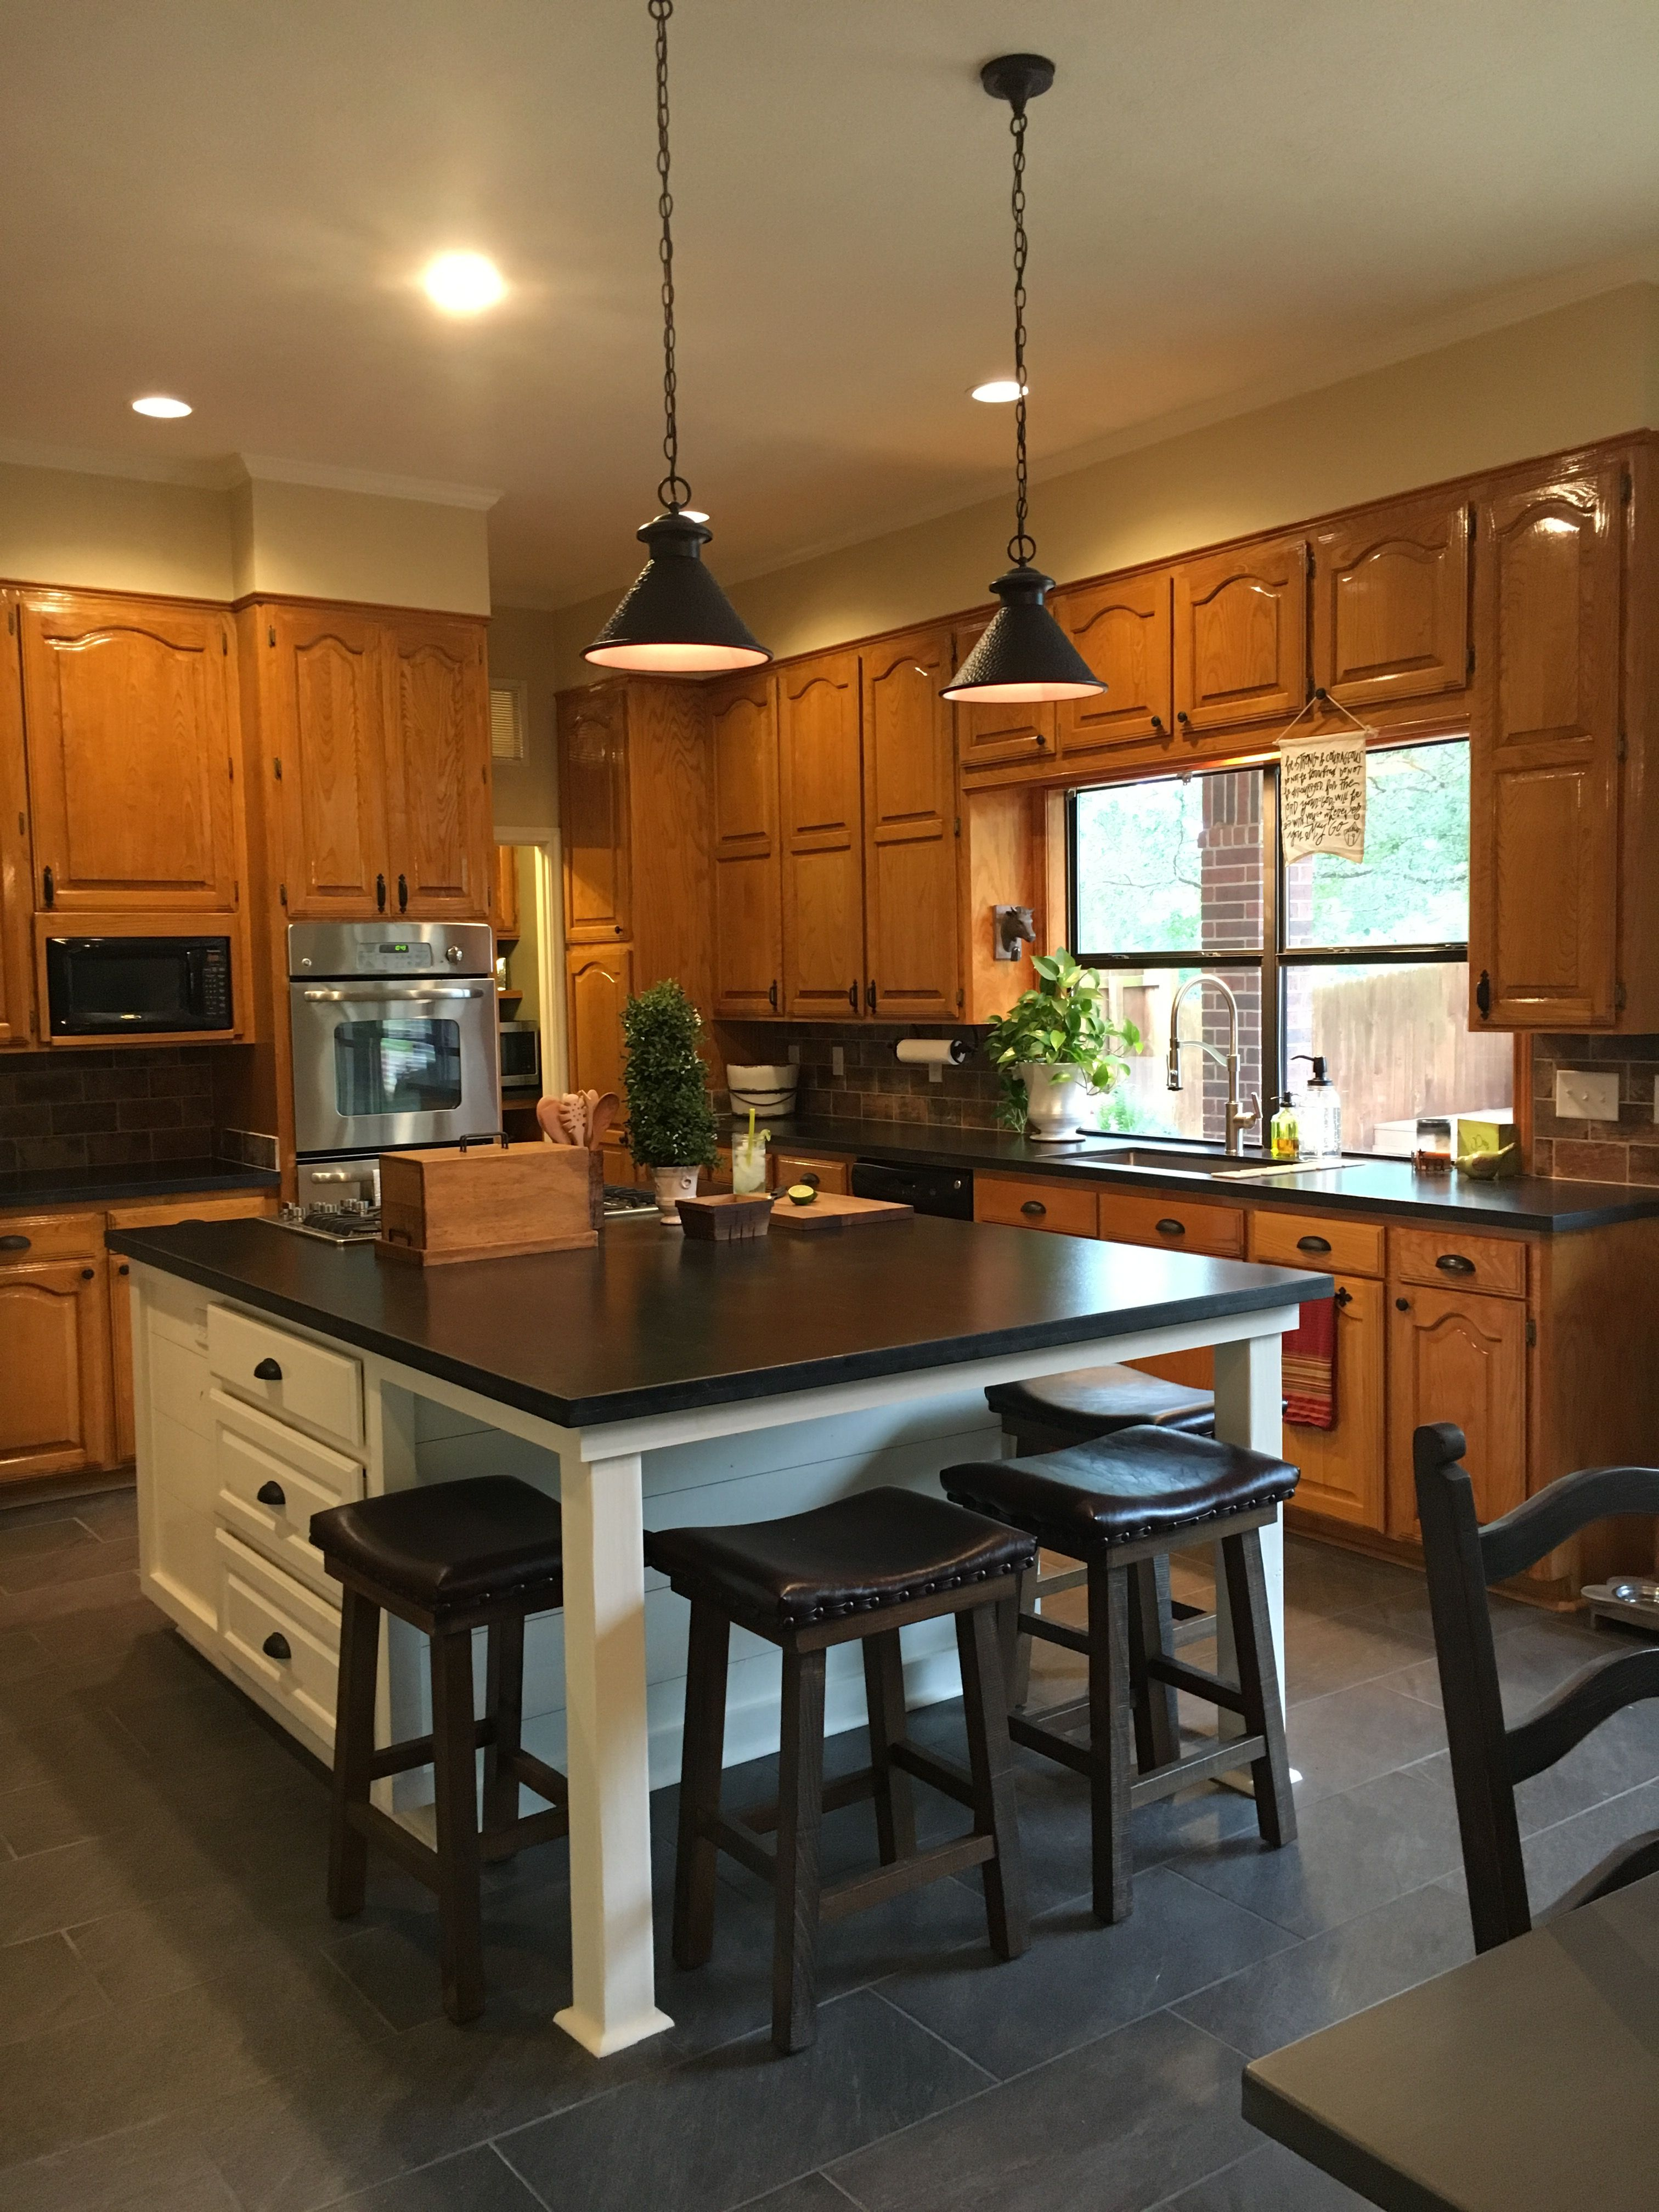 Updated Kitchens Best Kitchen Design Software With New White Island Original Honey Oak Cabinets And A Touch Of Shiplap Love Your Warm Tone